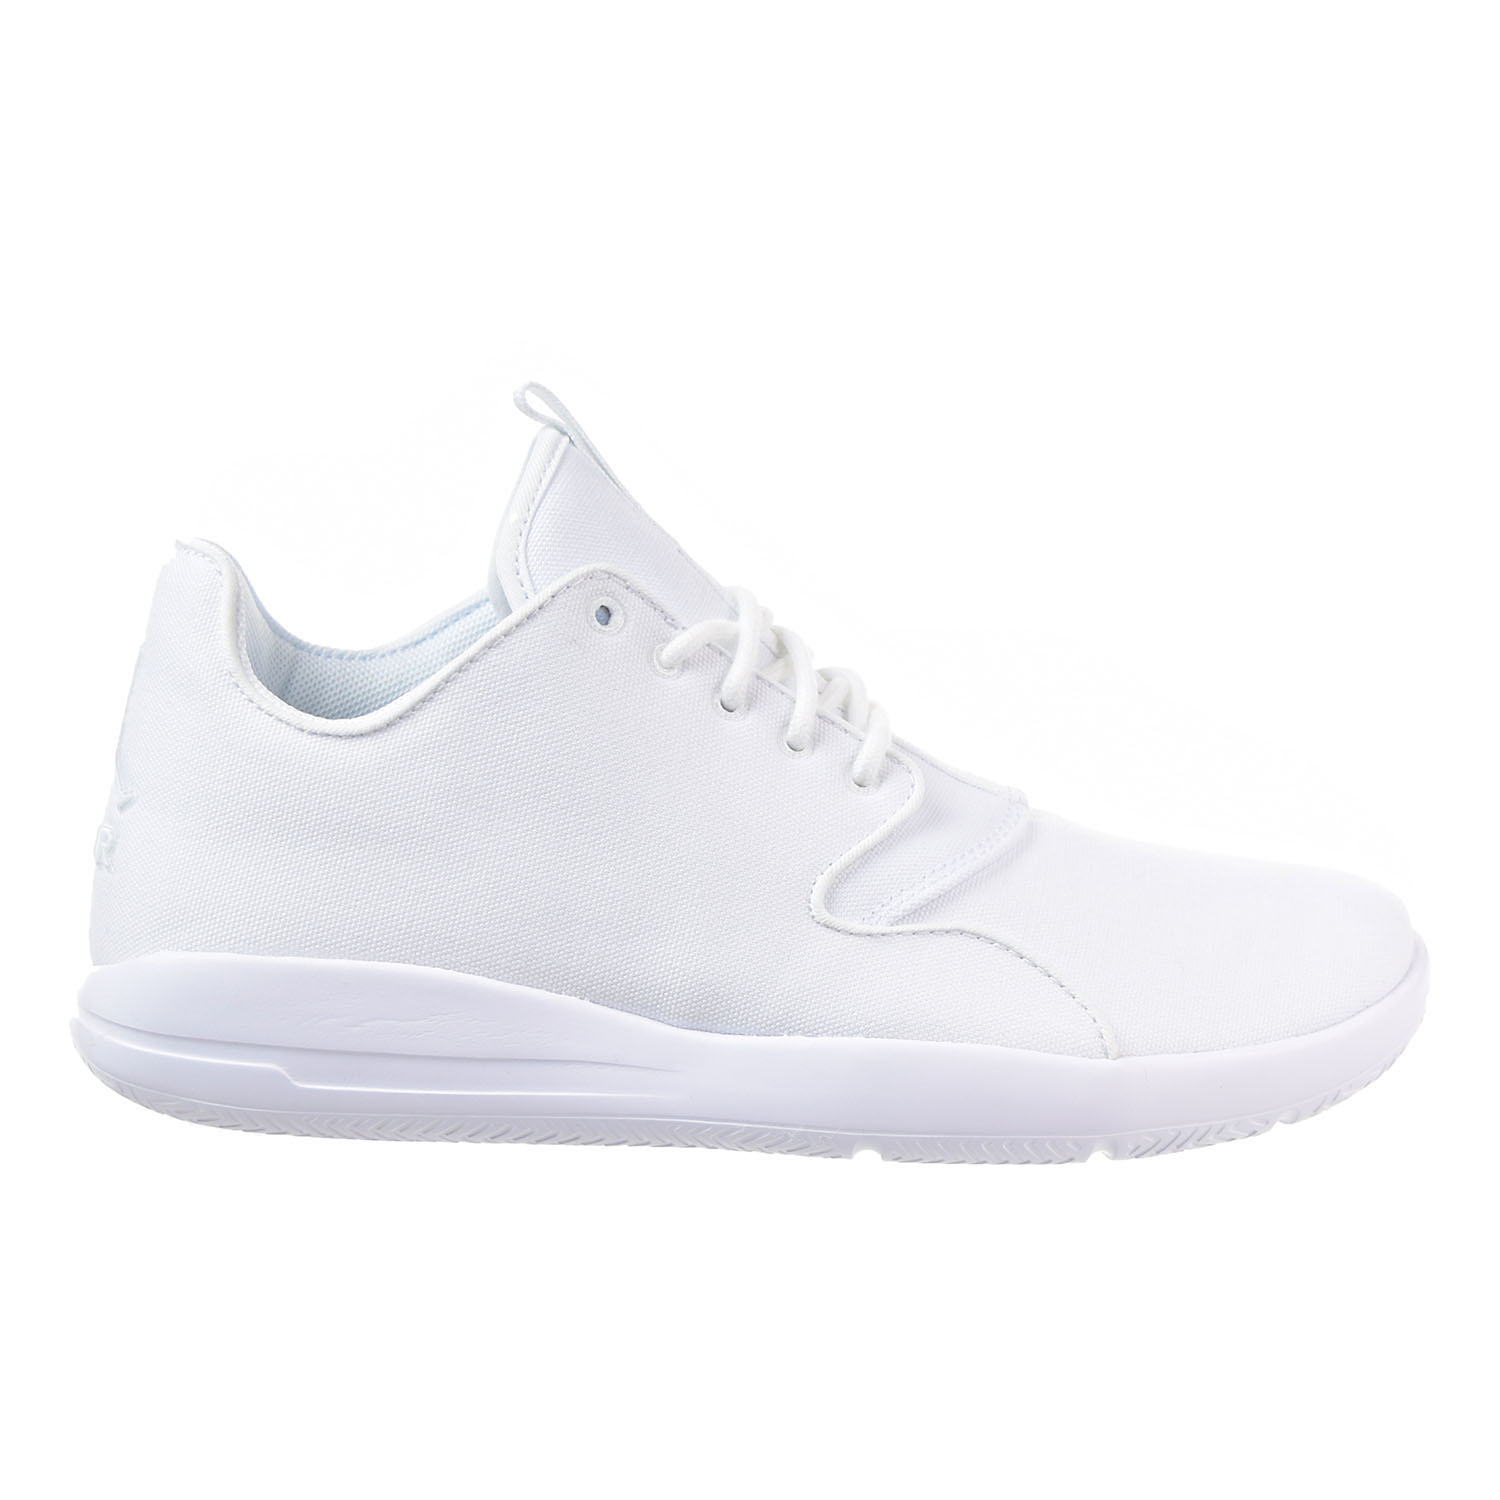 d71cf6e5c014da ... nike shoes 3c138 7b21a  best price jordan eclipse mens shoes white  white white 724010 100 4a2f3 f4b0b